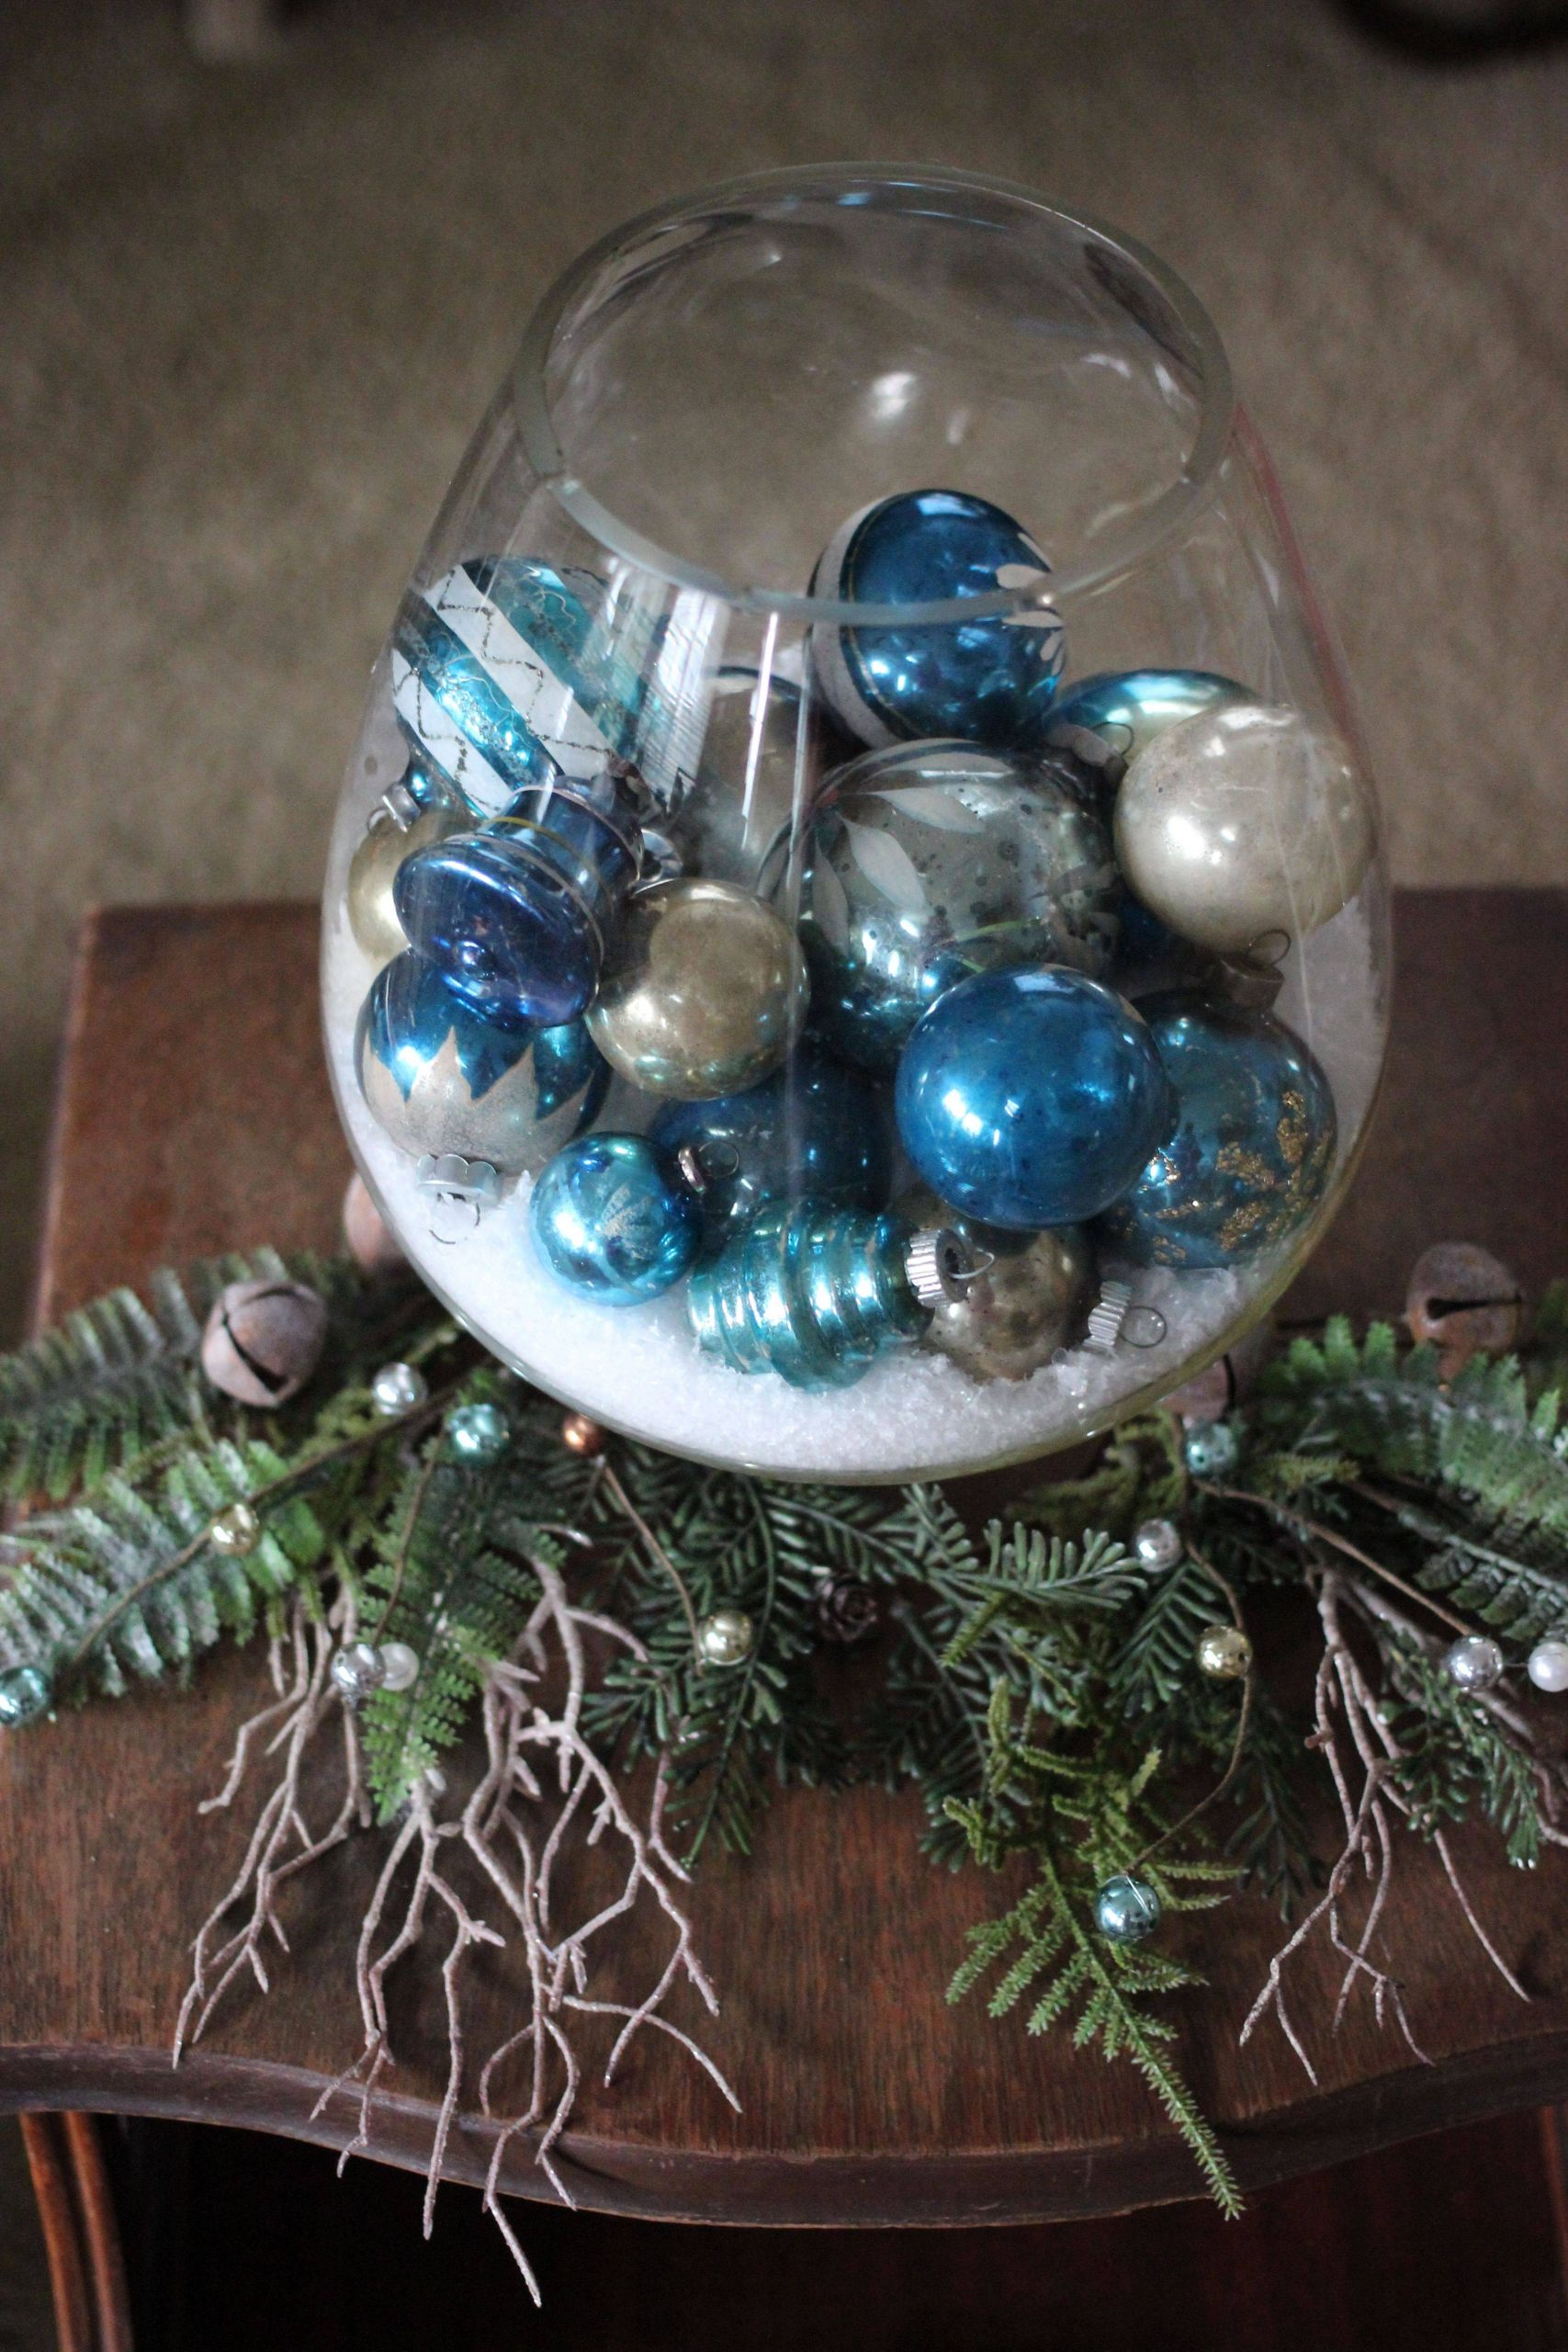 Aqua Blue Christmas Decorations Awesome Mercury Glass Balls From Poland In Blue and Silver